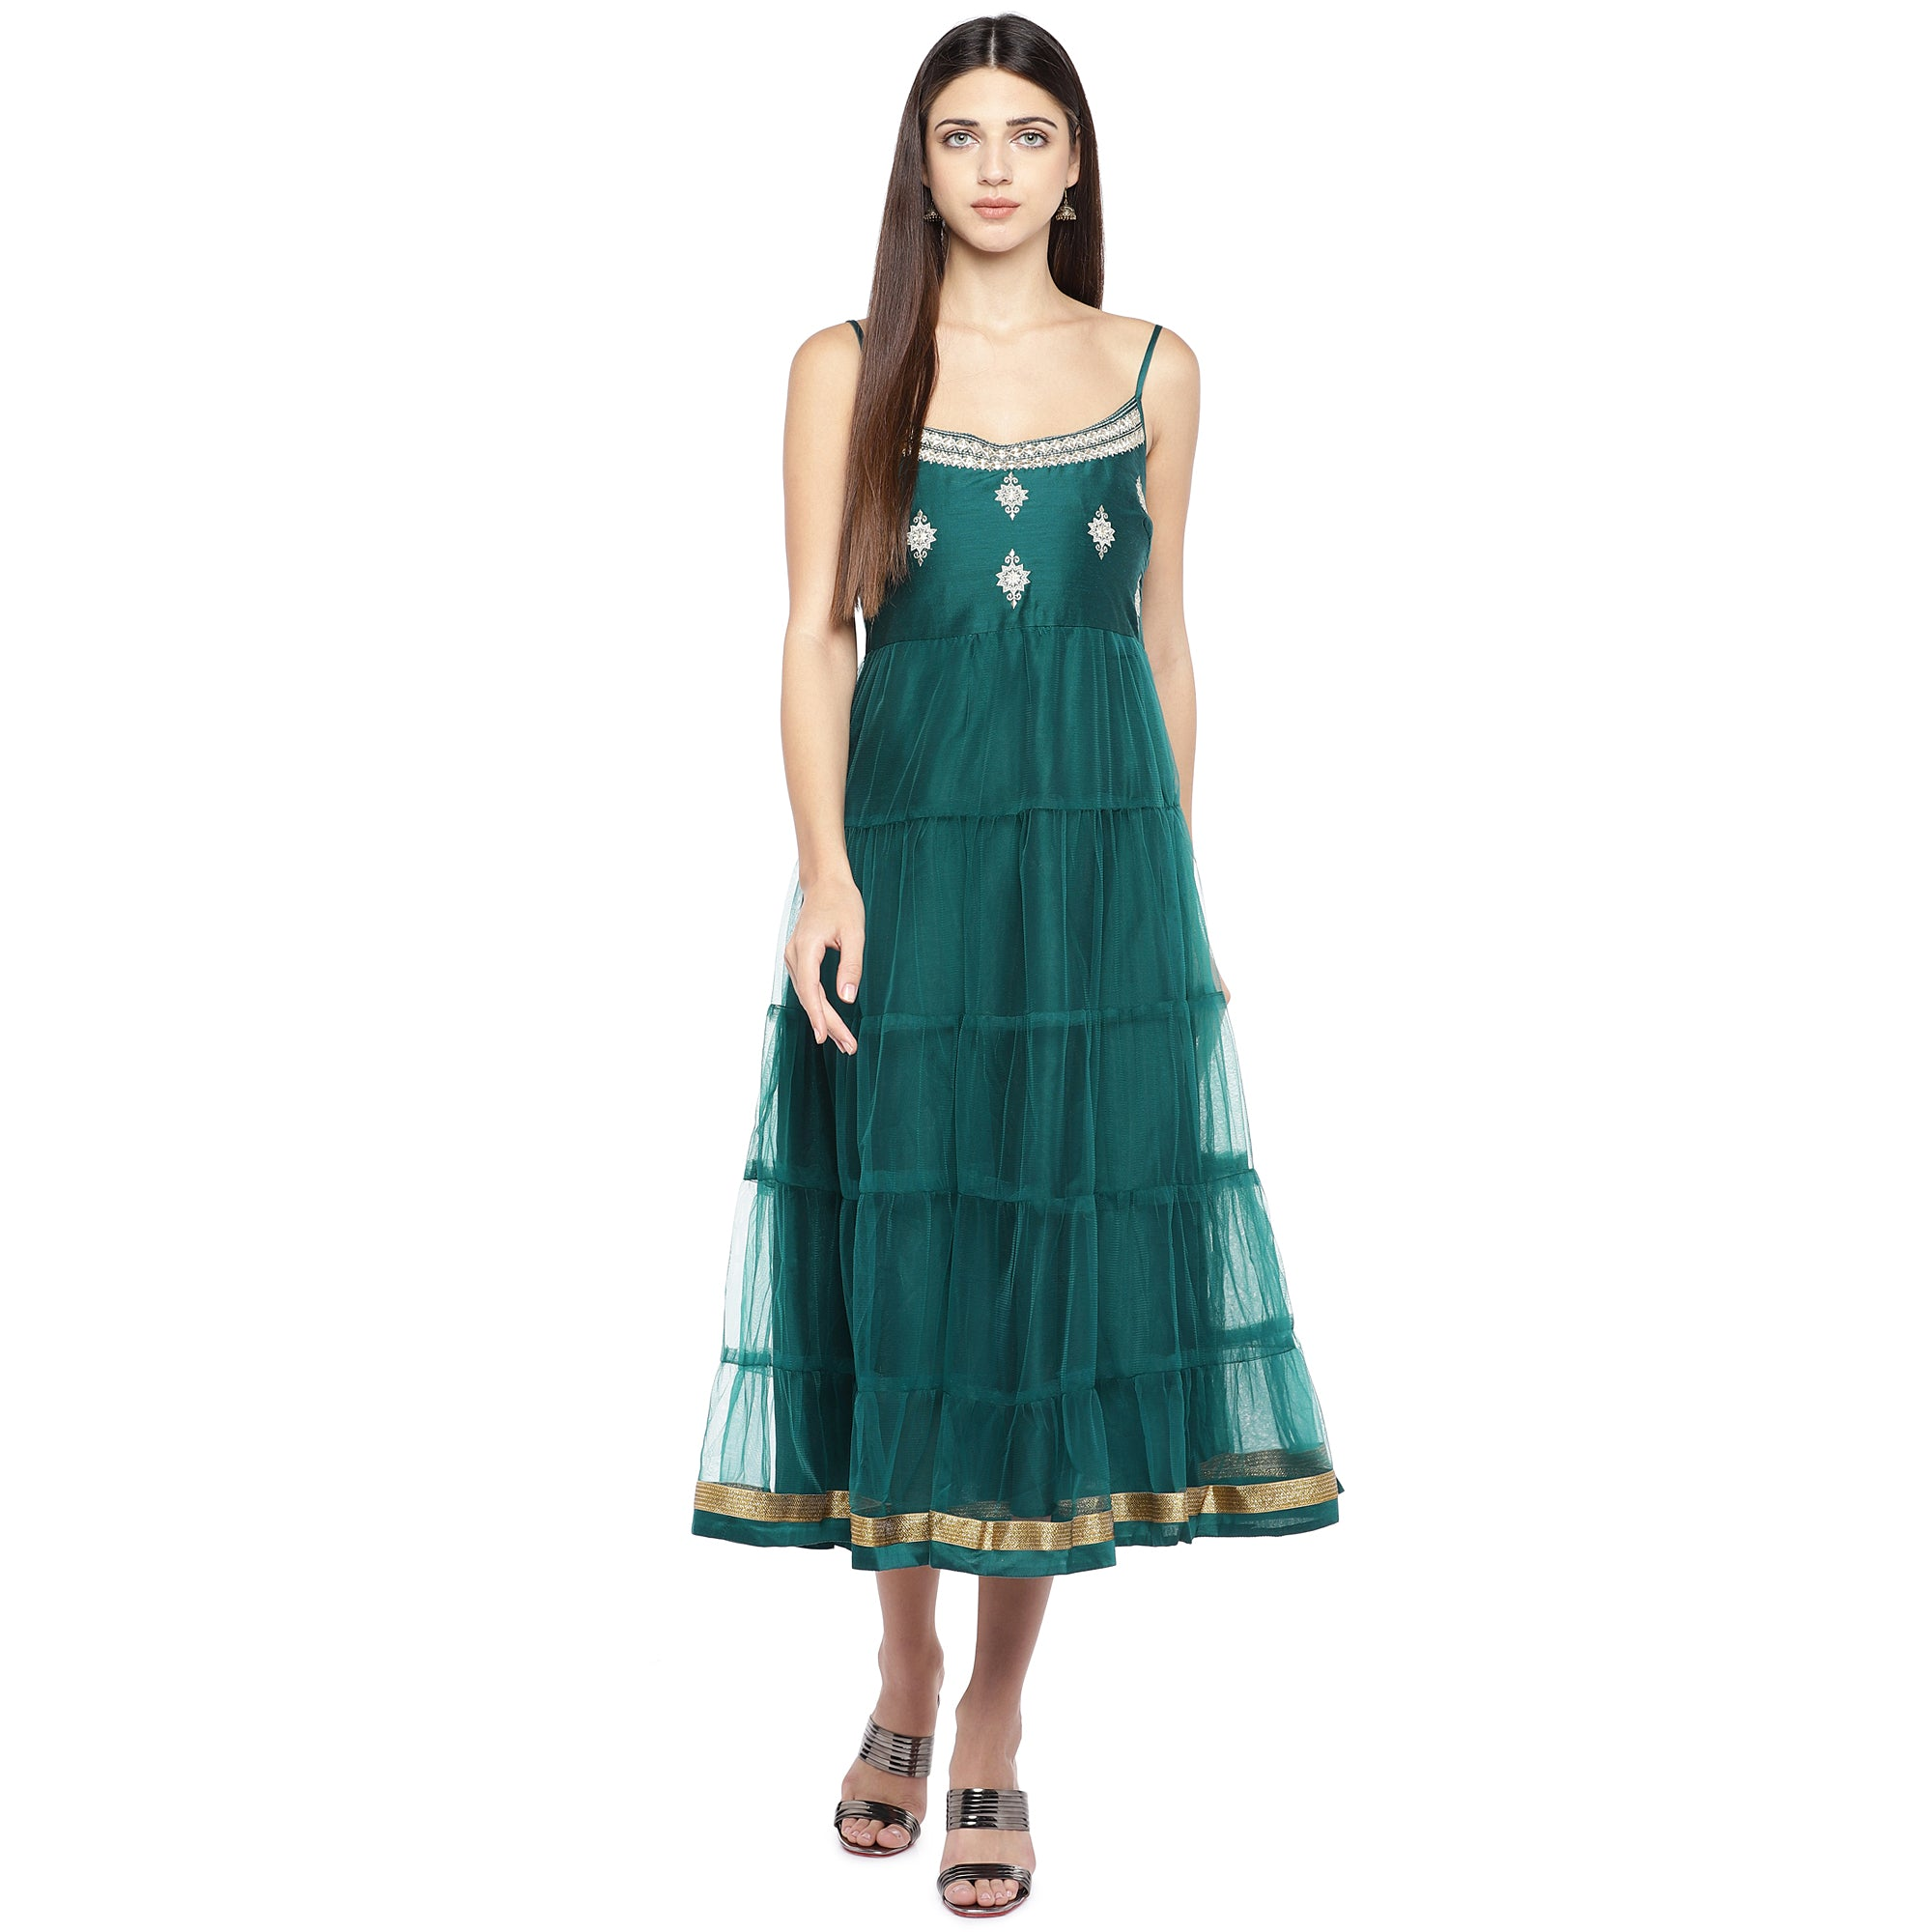 Teal Green Self Design Empire Dress-4